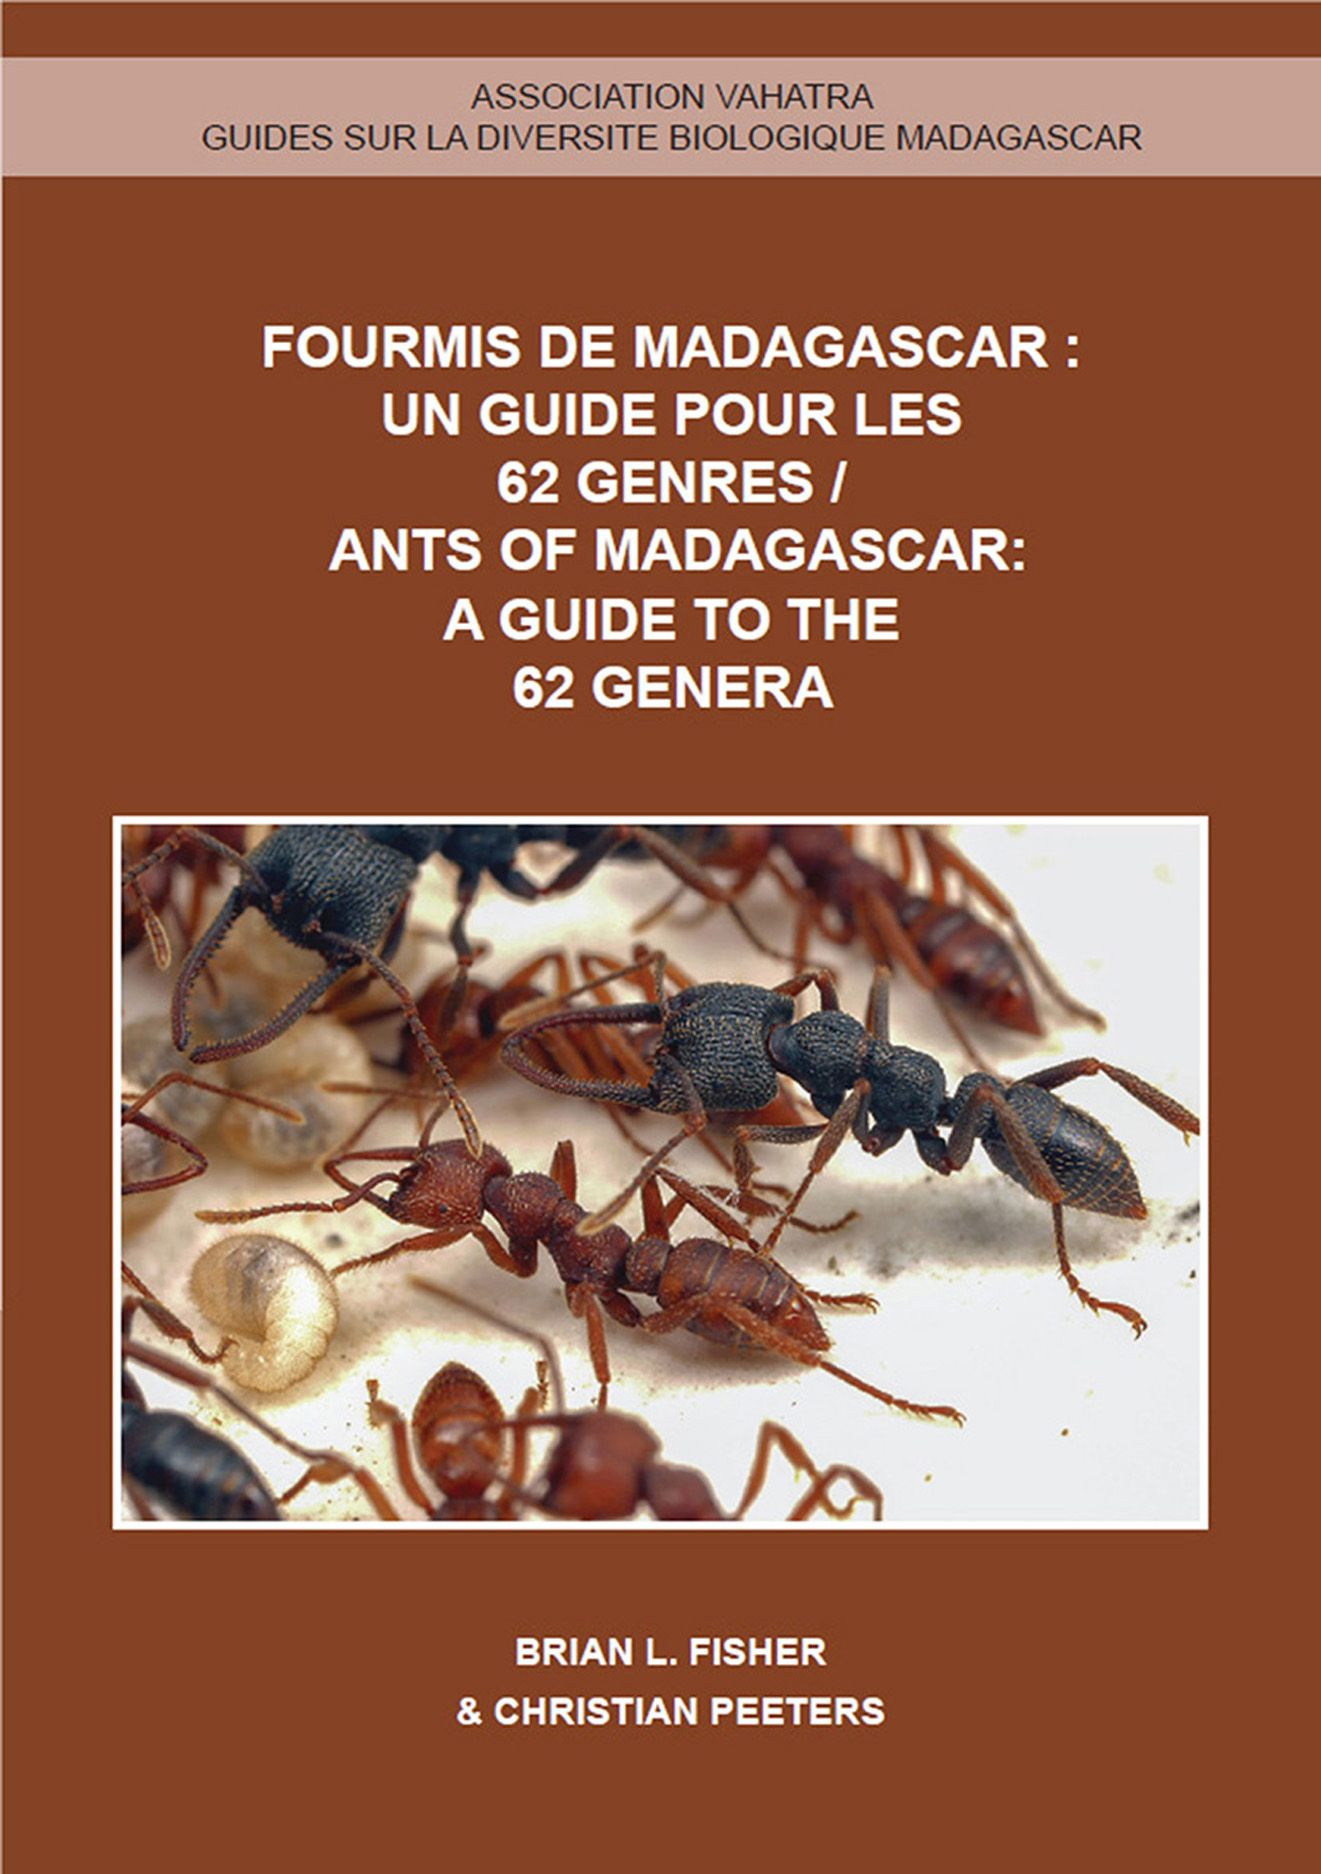 Ants of Madagascar: A Guide to the 62 Genera